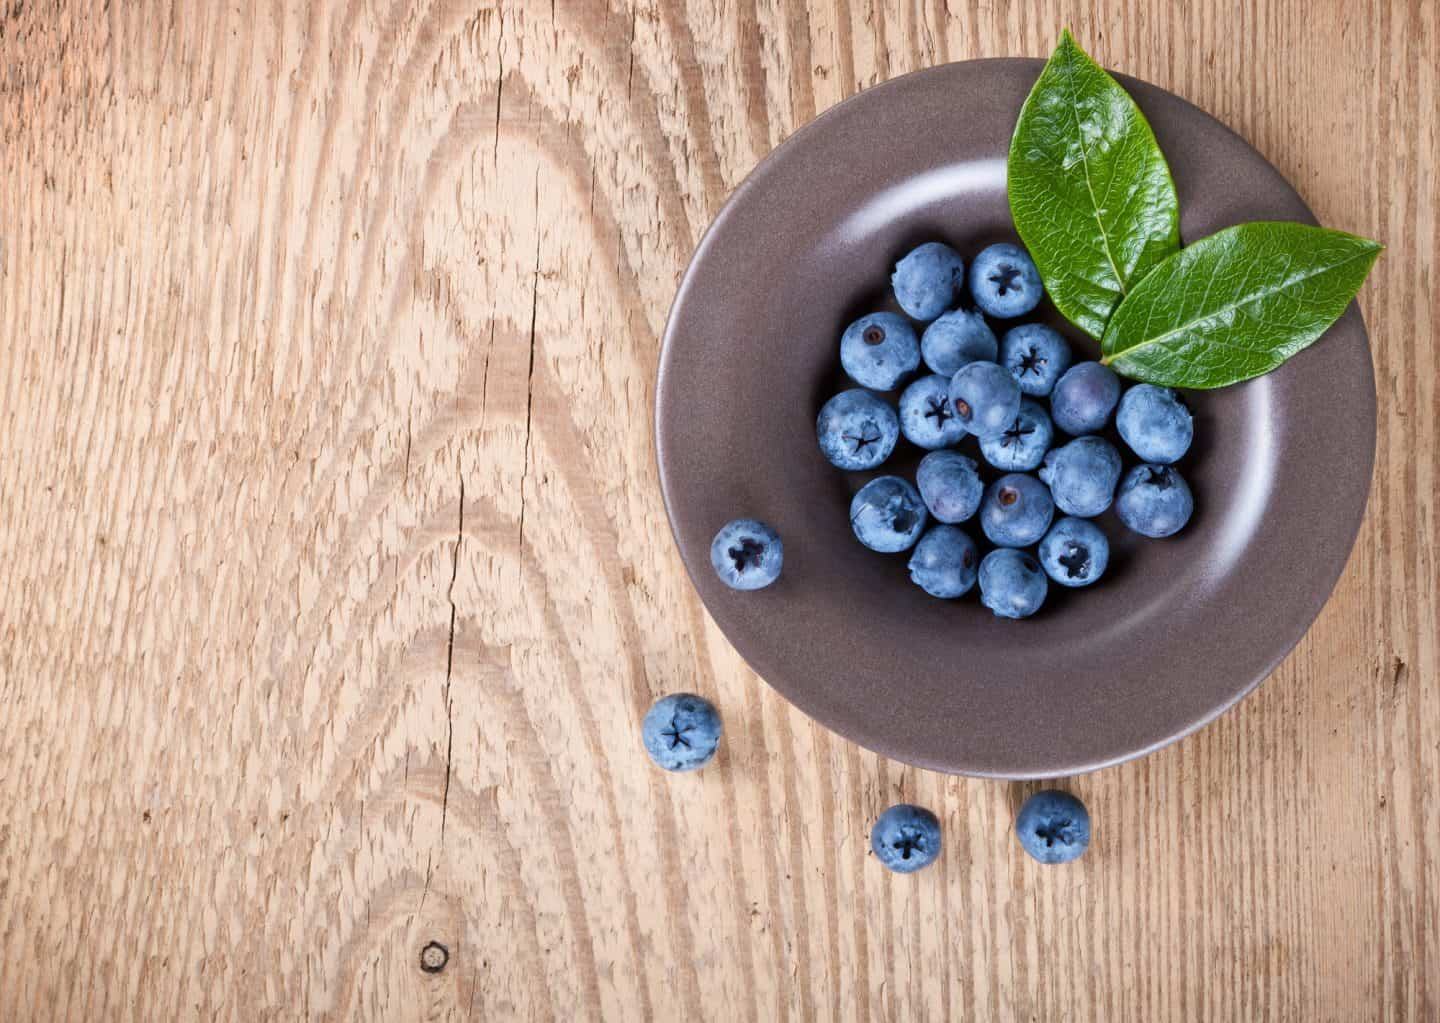 Improve your diet and add nutrients like blueberries